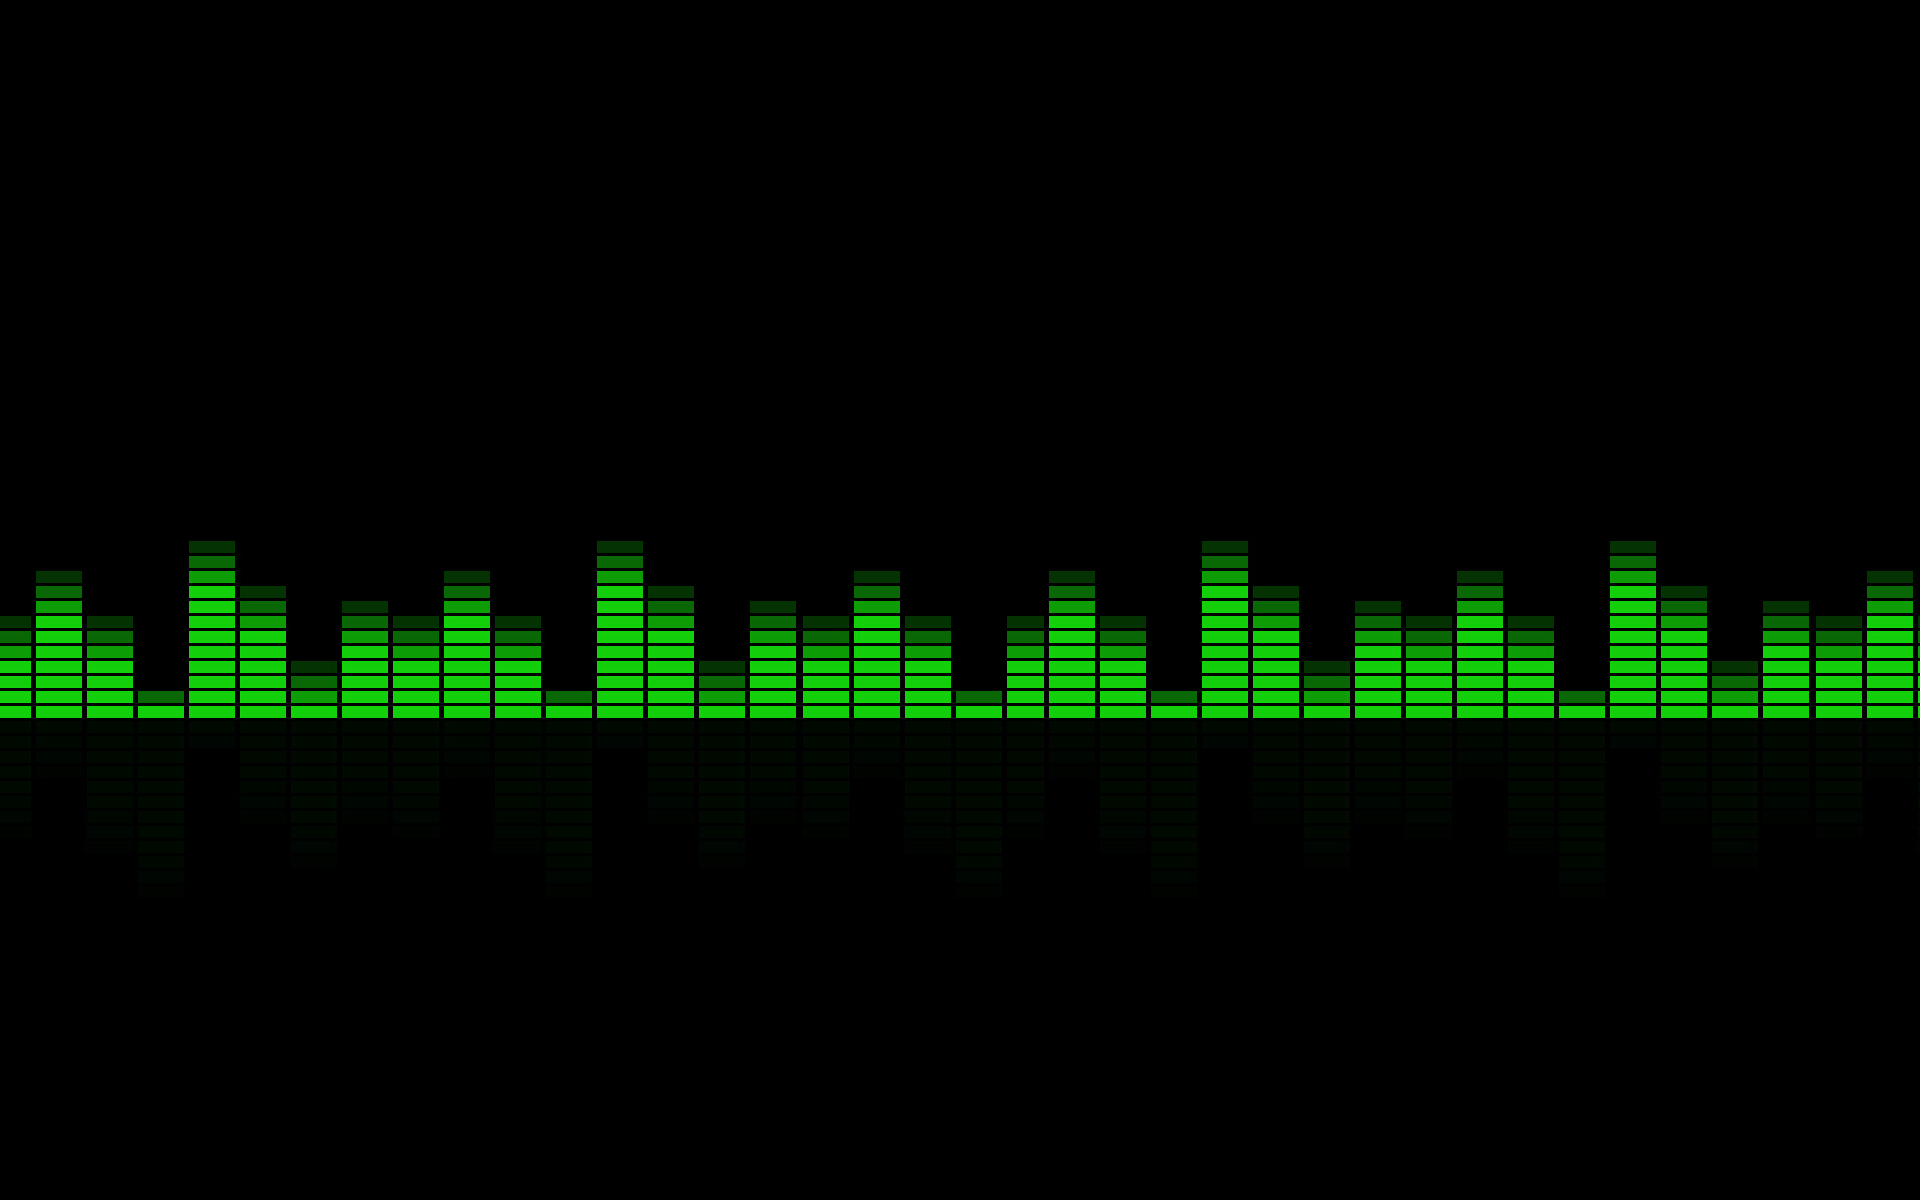 Music equalizer rainbow spectrum HD Wallpaper